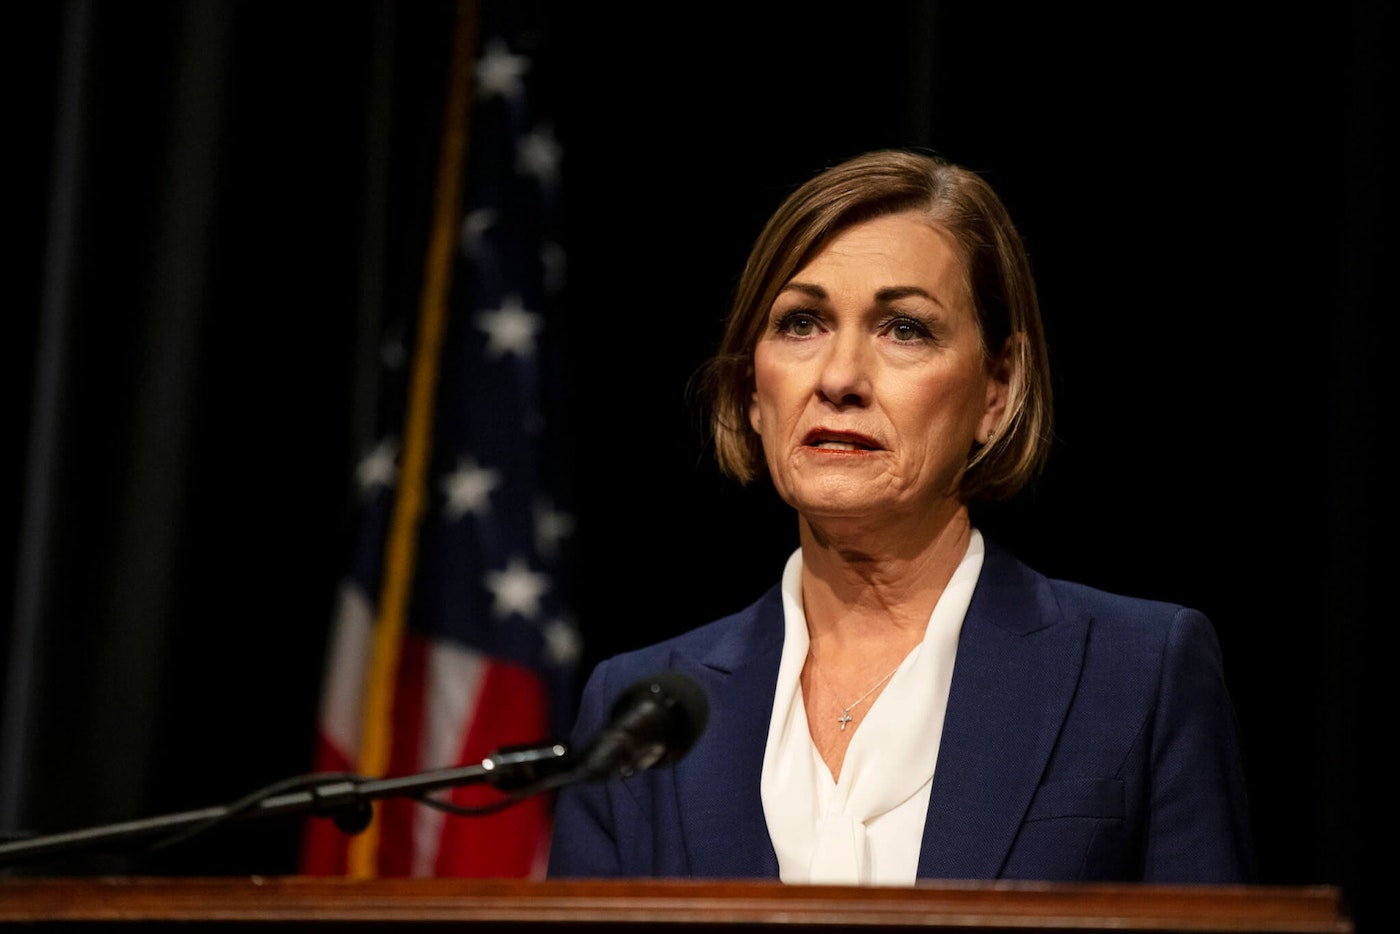 Iowa Gov. Kim Reynolds gives a primetime televised address announcing new efforts to combat COVID-19 in the state, on Monday, Nov. 16, 2020, at Iowa PBS, in Johnston, Iowa. (Kelsey Kremer/The Des Moines Register via AP)